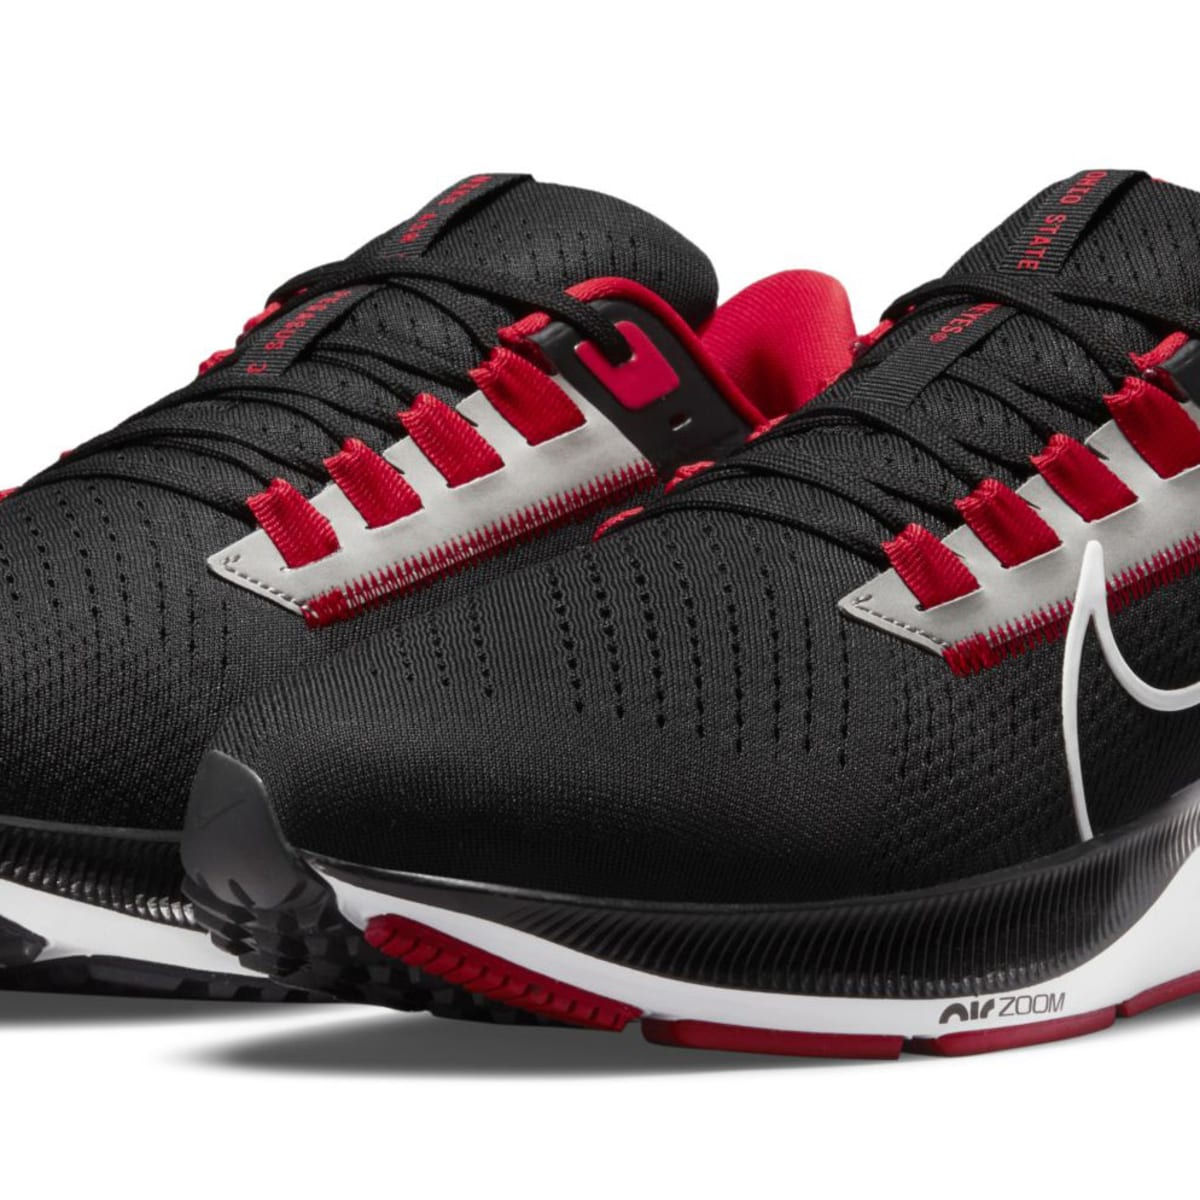 Ohio State To Release Nike Pegasus 38 Shoes This Summer - Sports ...